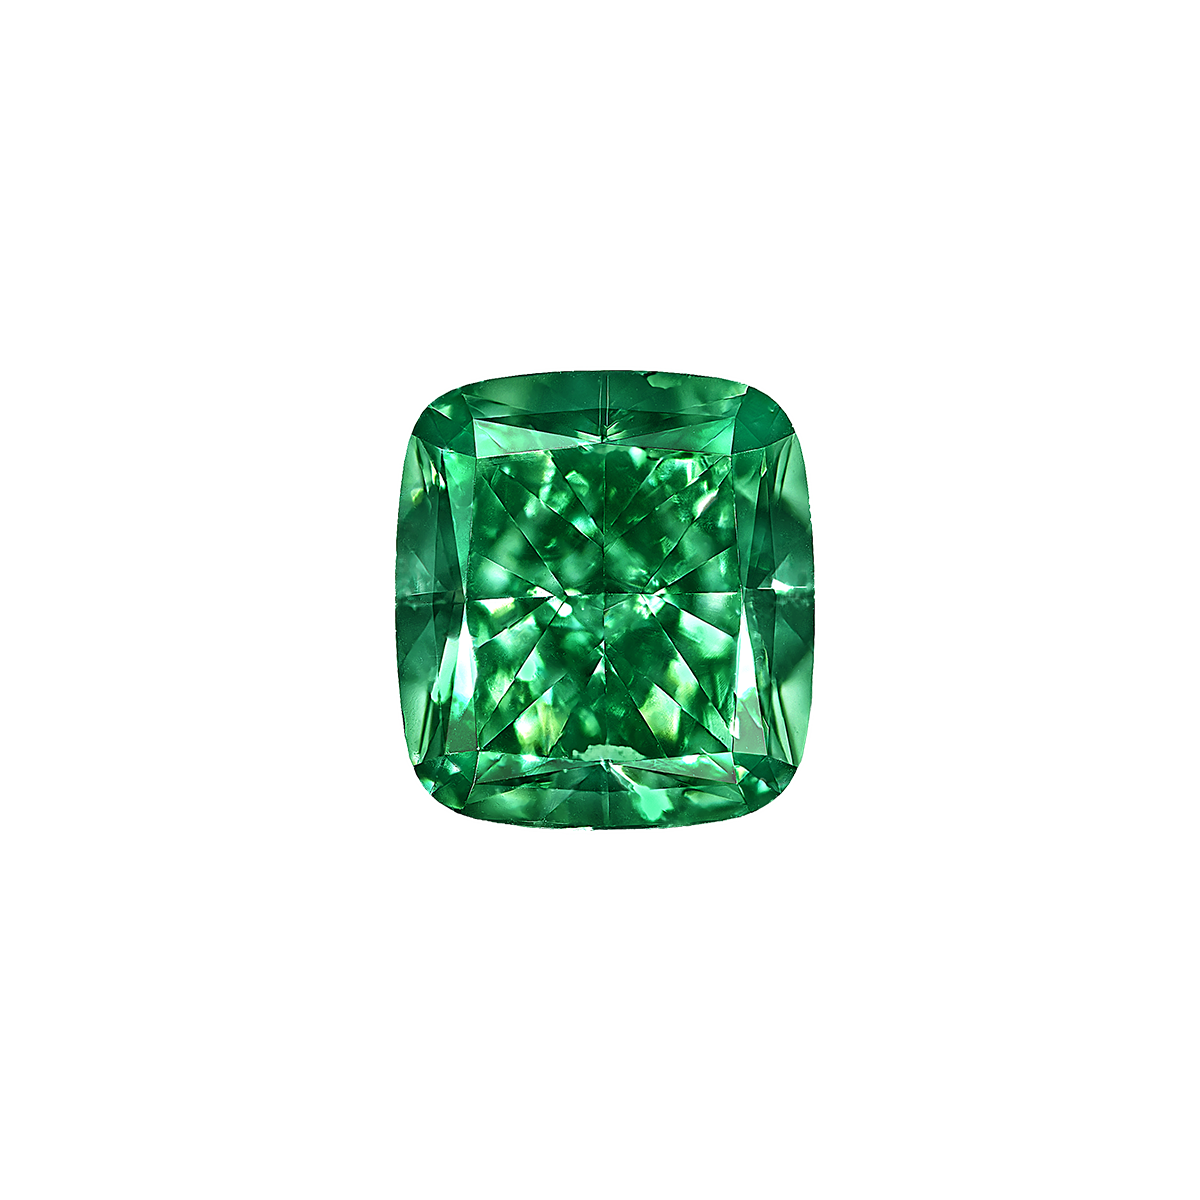 GIA 1.01 克拉 深彩綠鑽裸石